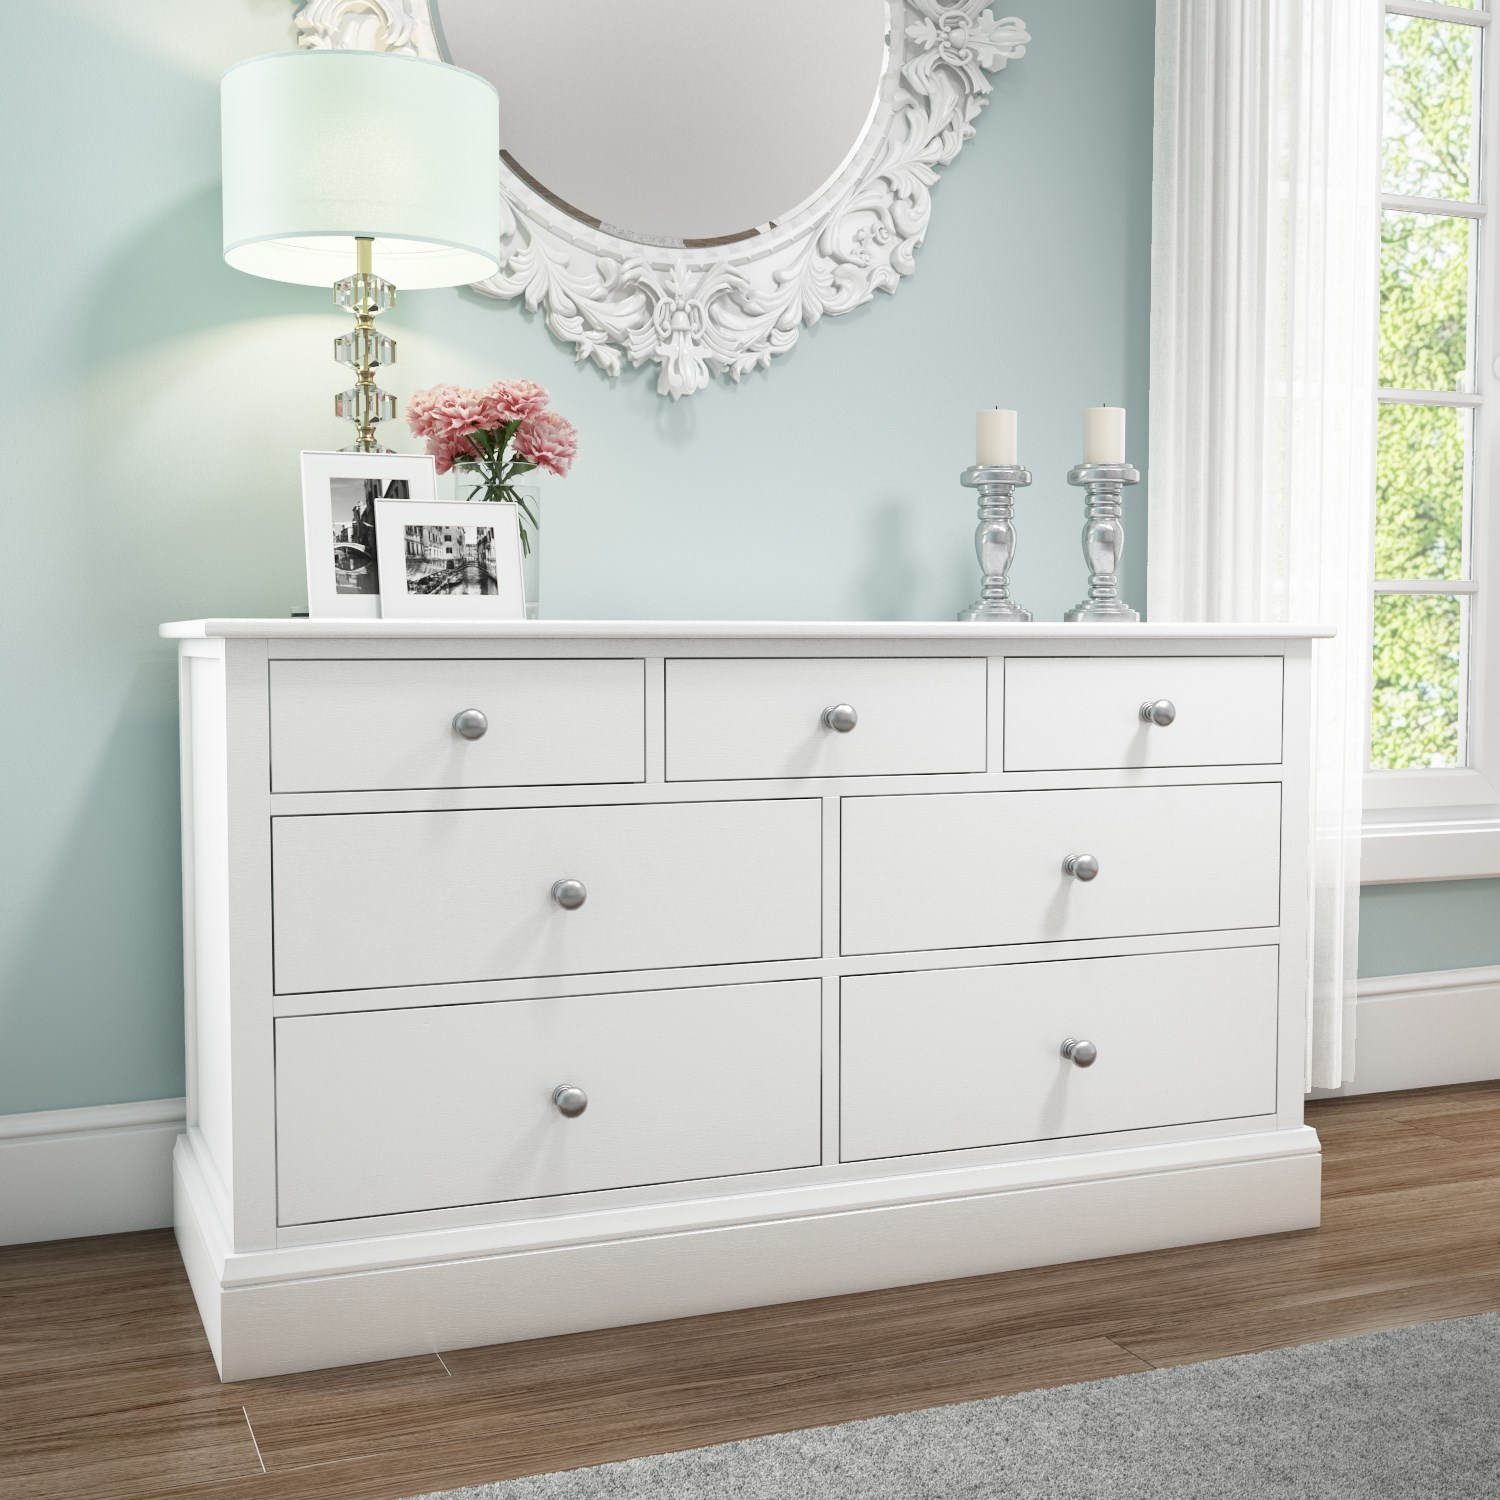 The demand for white chest of drawers